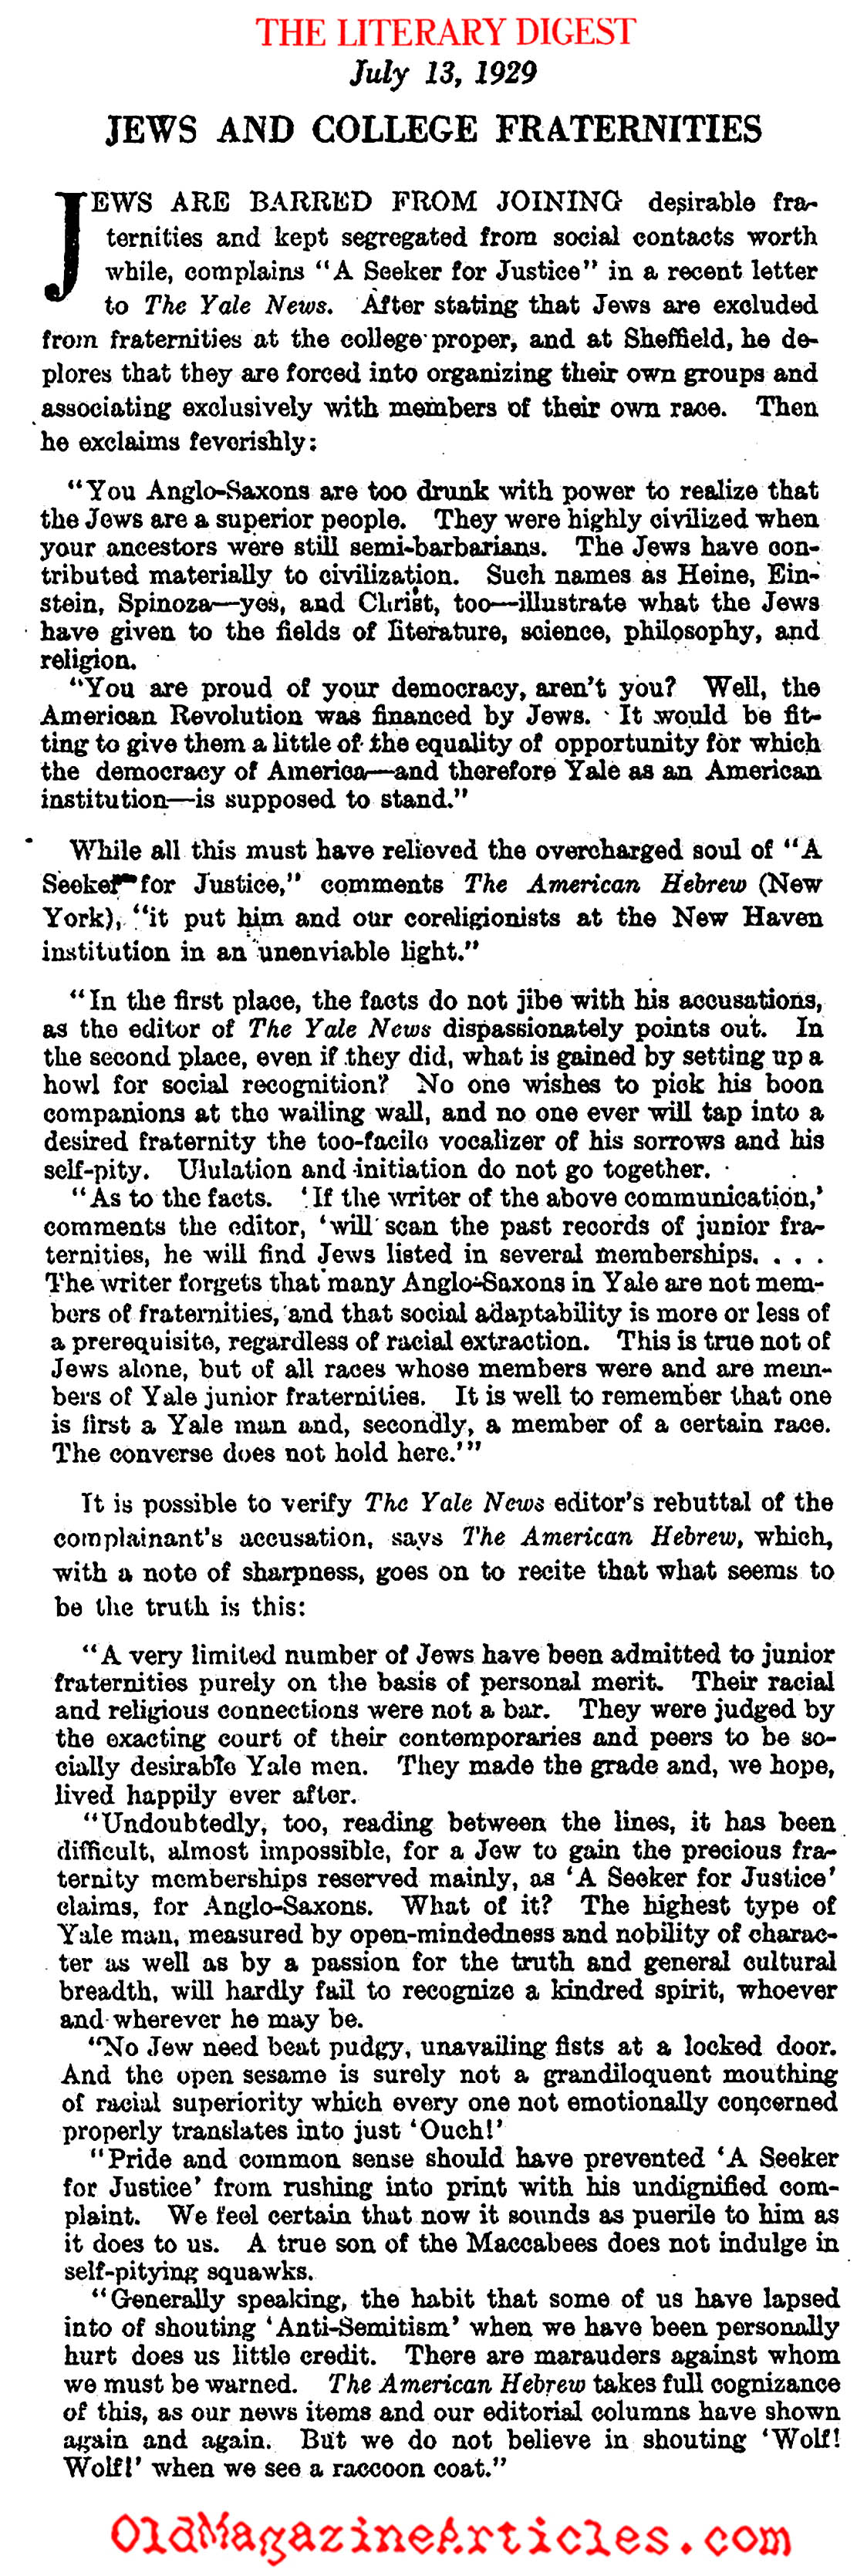 Jews Barred from Fraternities at Yale (Literary Digest, 1929)